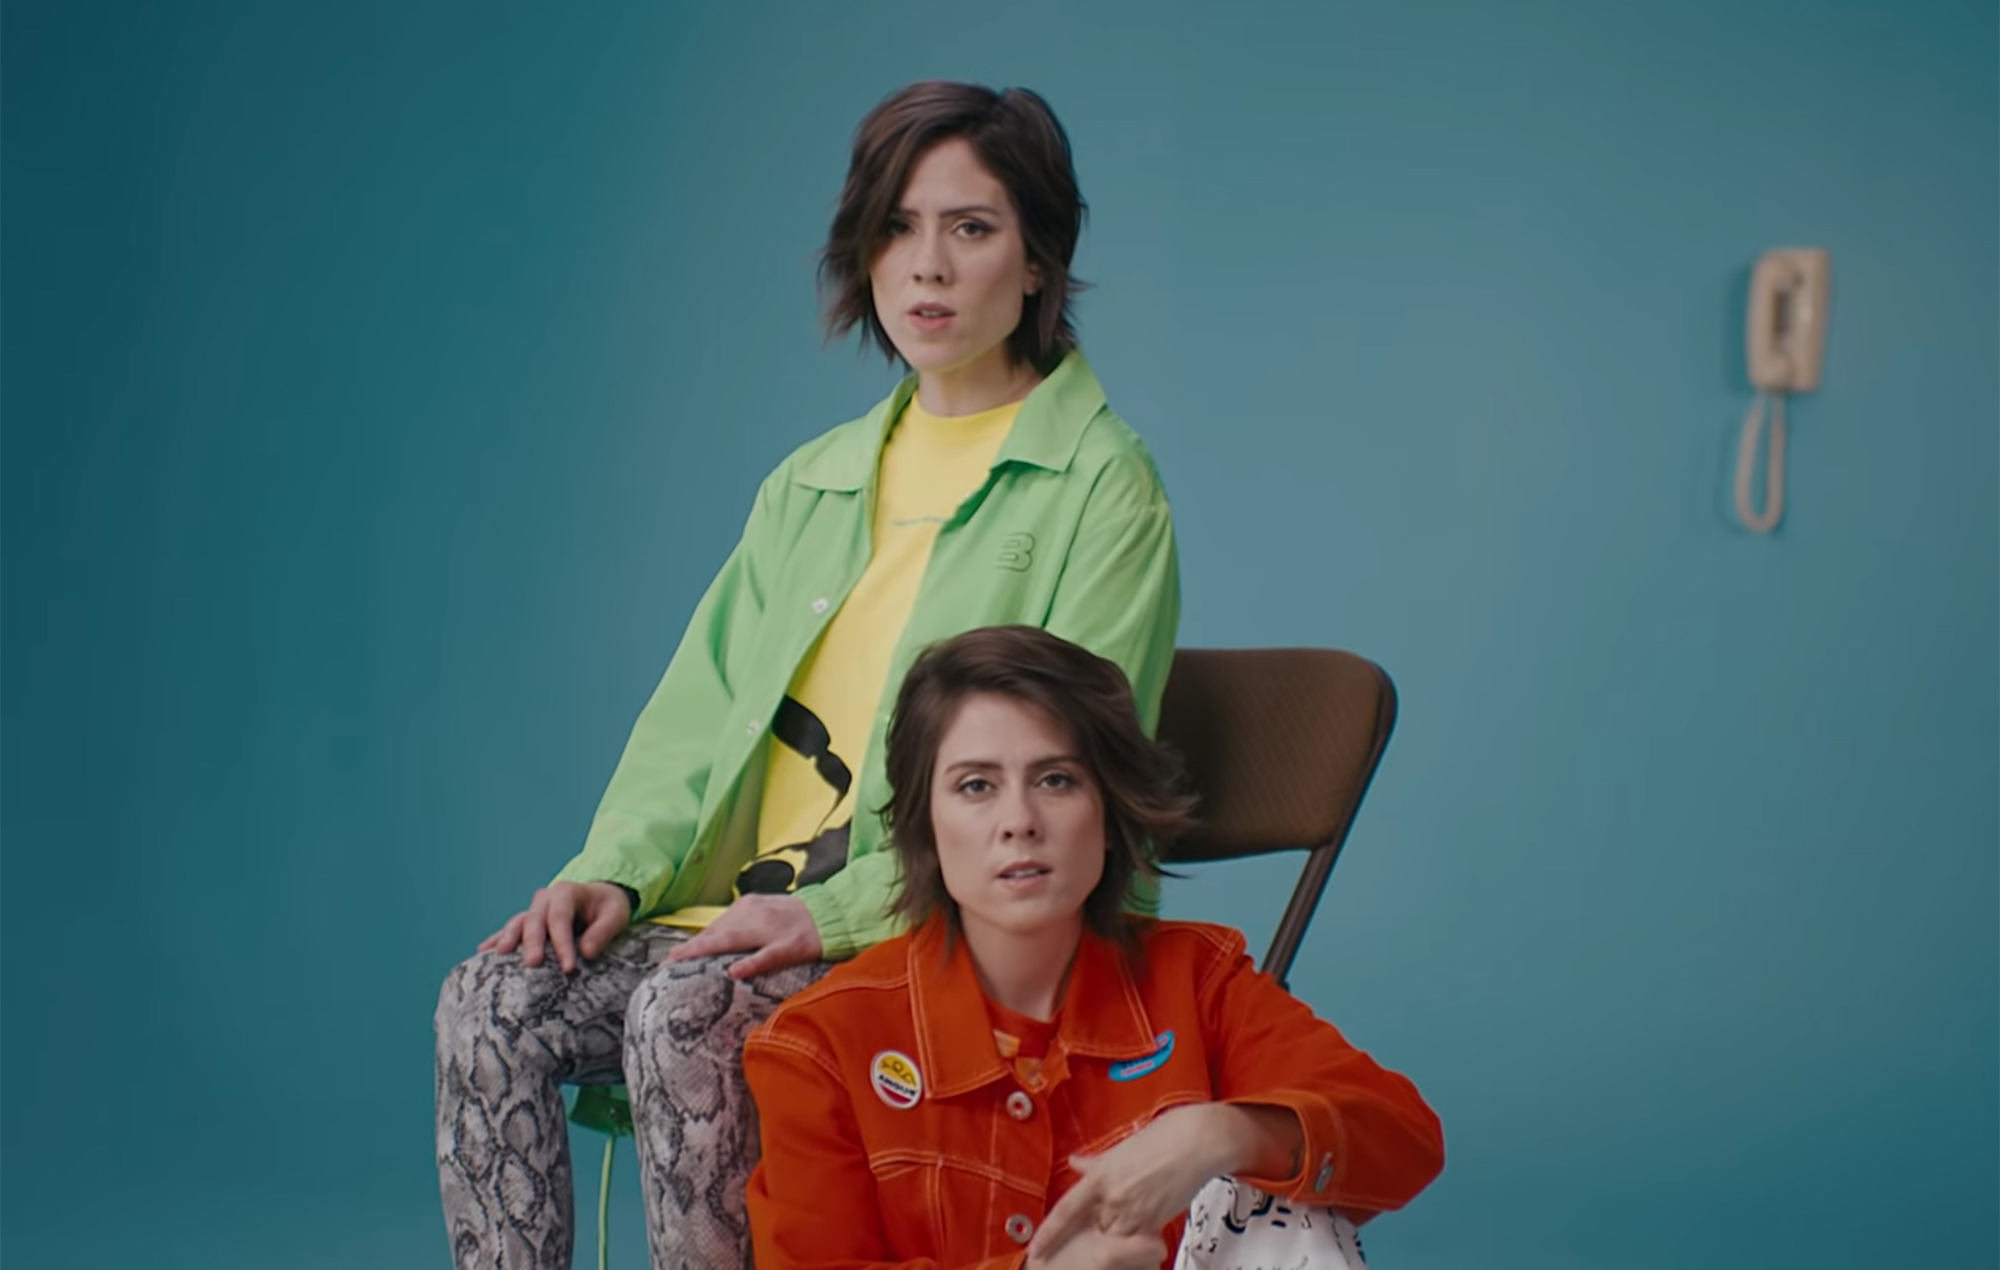 Watch Tegan and Sara perform 'I'll Be Back Someday' and discuss high school LSD habit | NME